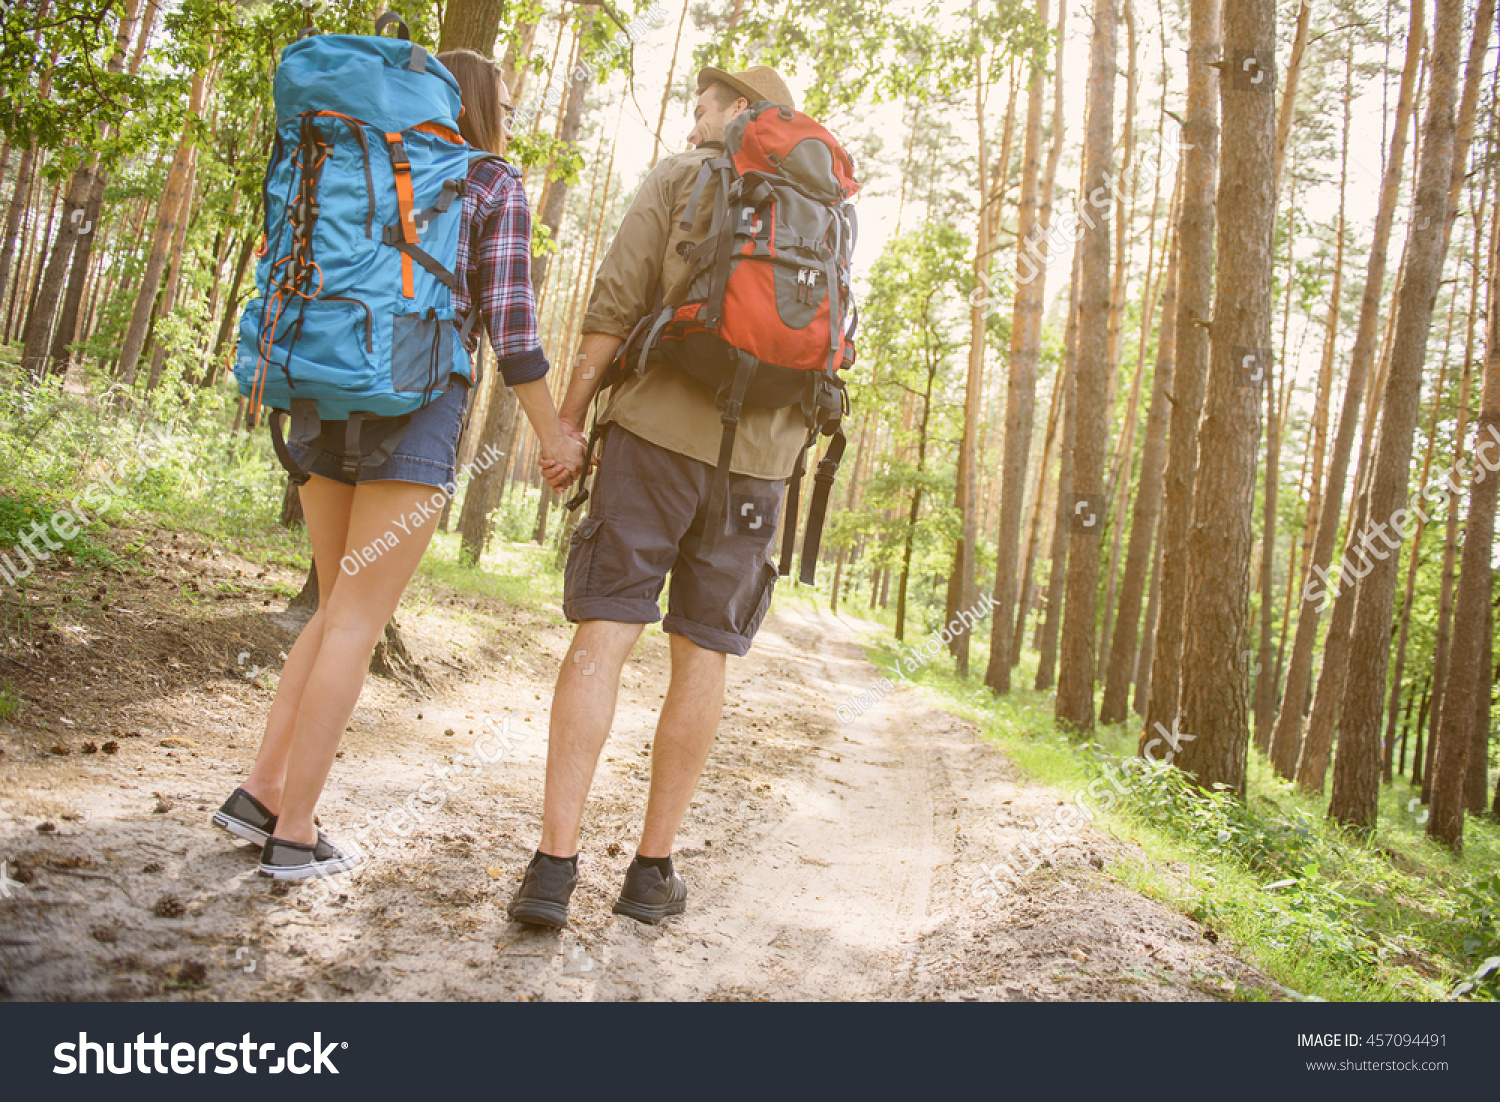 Cheerful young tourists hiking nature stock photo for Cheerful nature